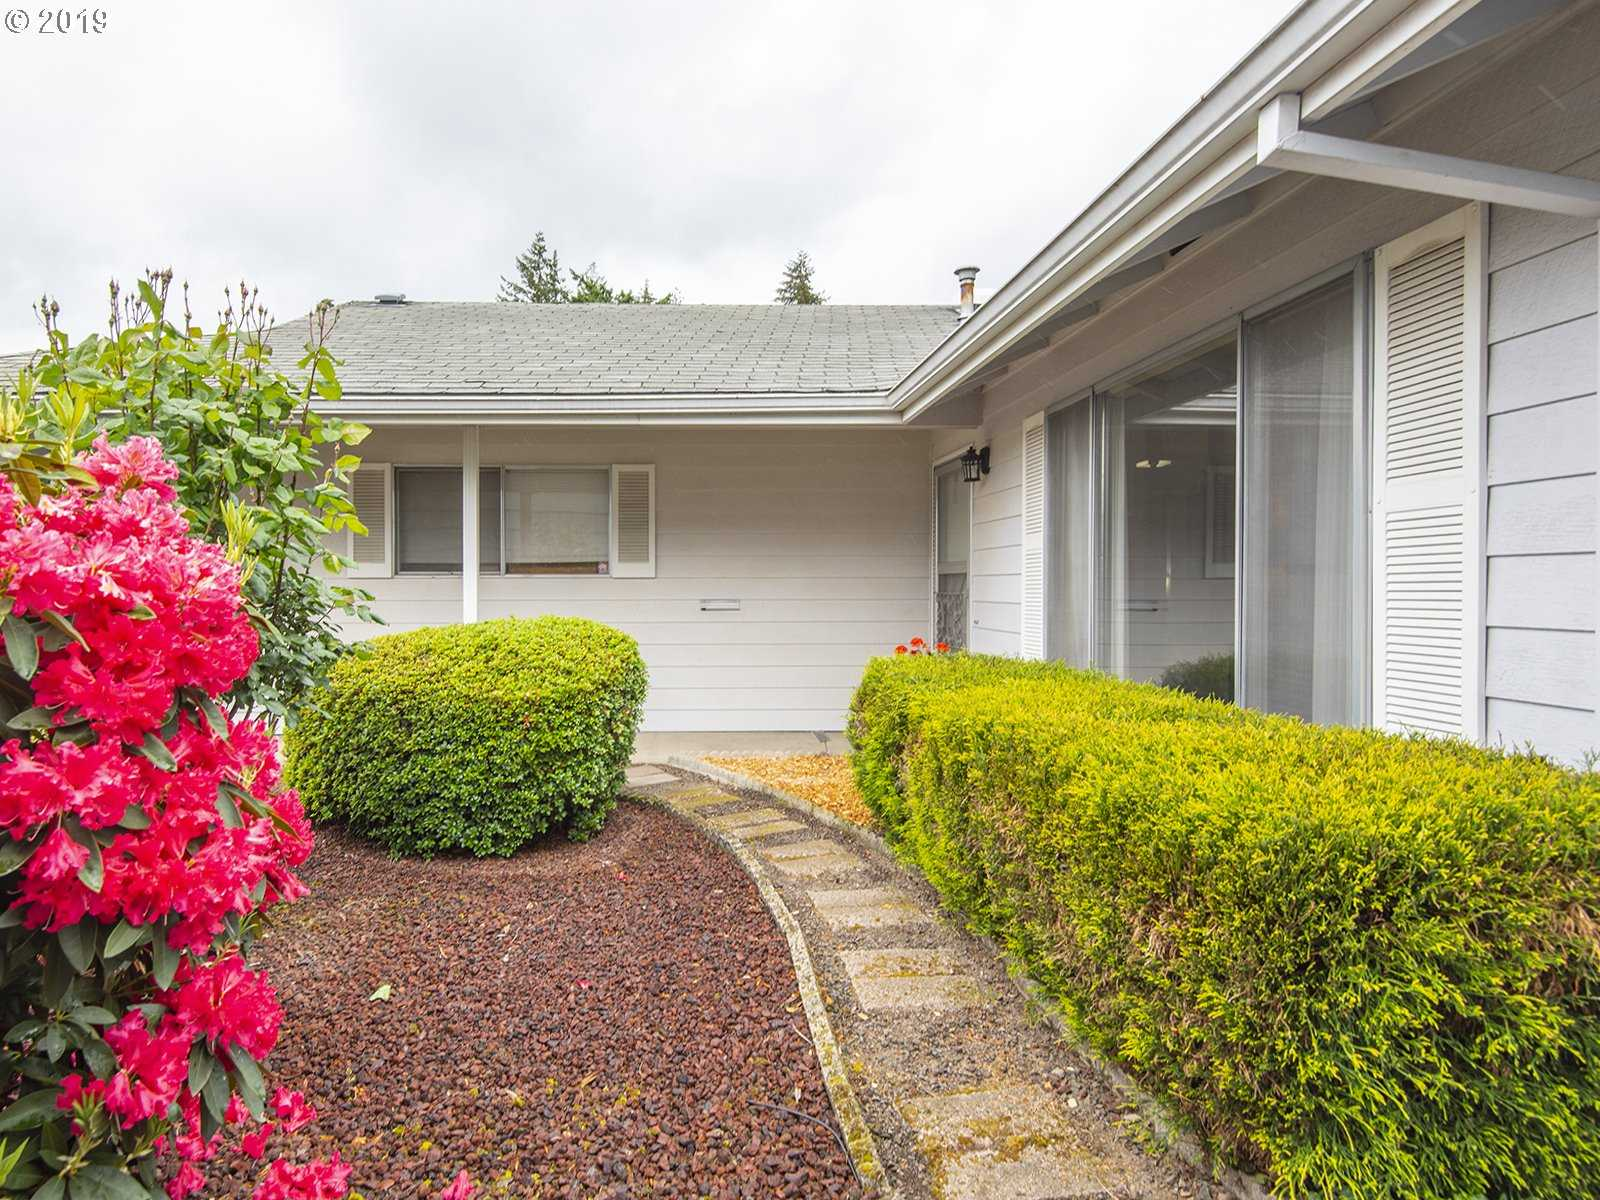 $330,000 - 2Br/2Ba -  for Sale in King City, King City